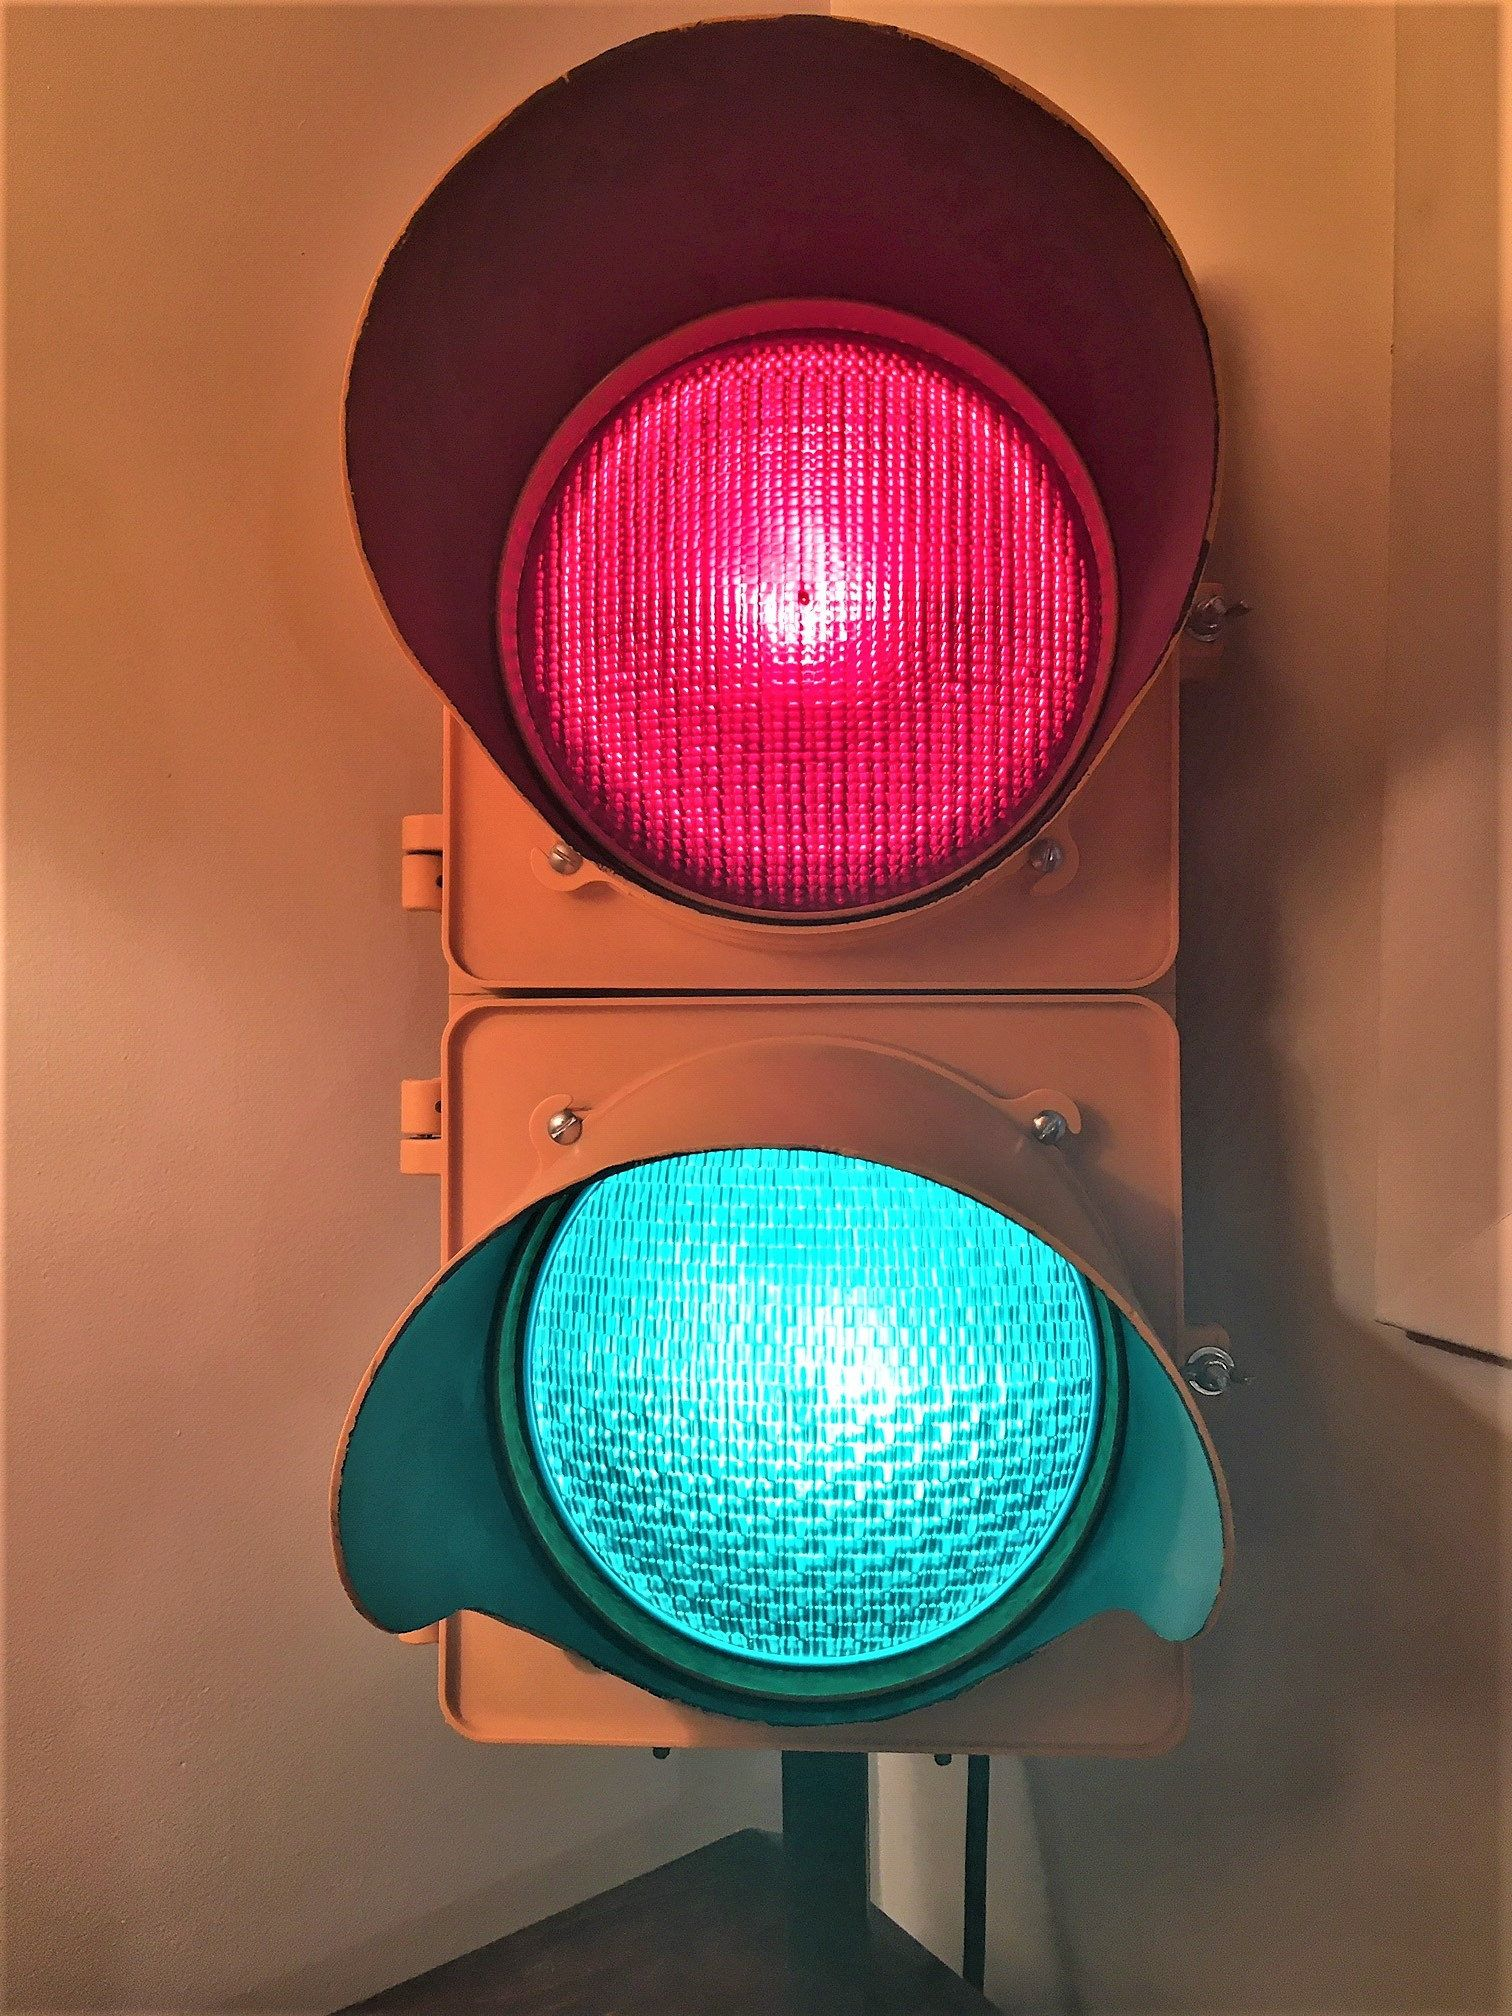 Vintage Mccain Inc Red And Green Traffic Light Stoplight Traffic Lamp Redlight Industrial Decor Hip Wall Hanging Signal Light Retro In 2020 Green Traffic Light Traffic Lamp Stop Light